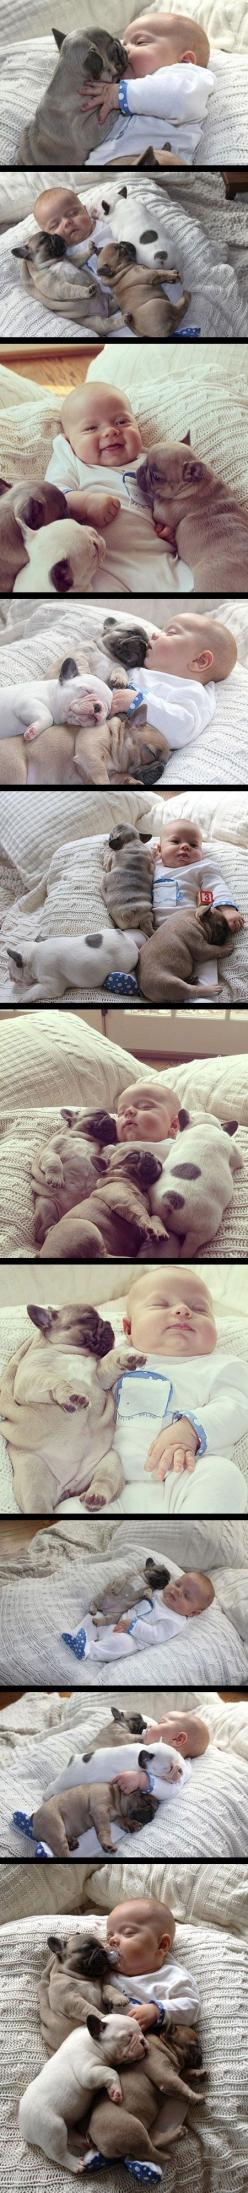 They think he's a pug!: Cuteness Overload, French Bulldogs, My Heart, Puppy, Baby, Animal